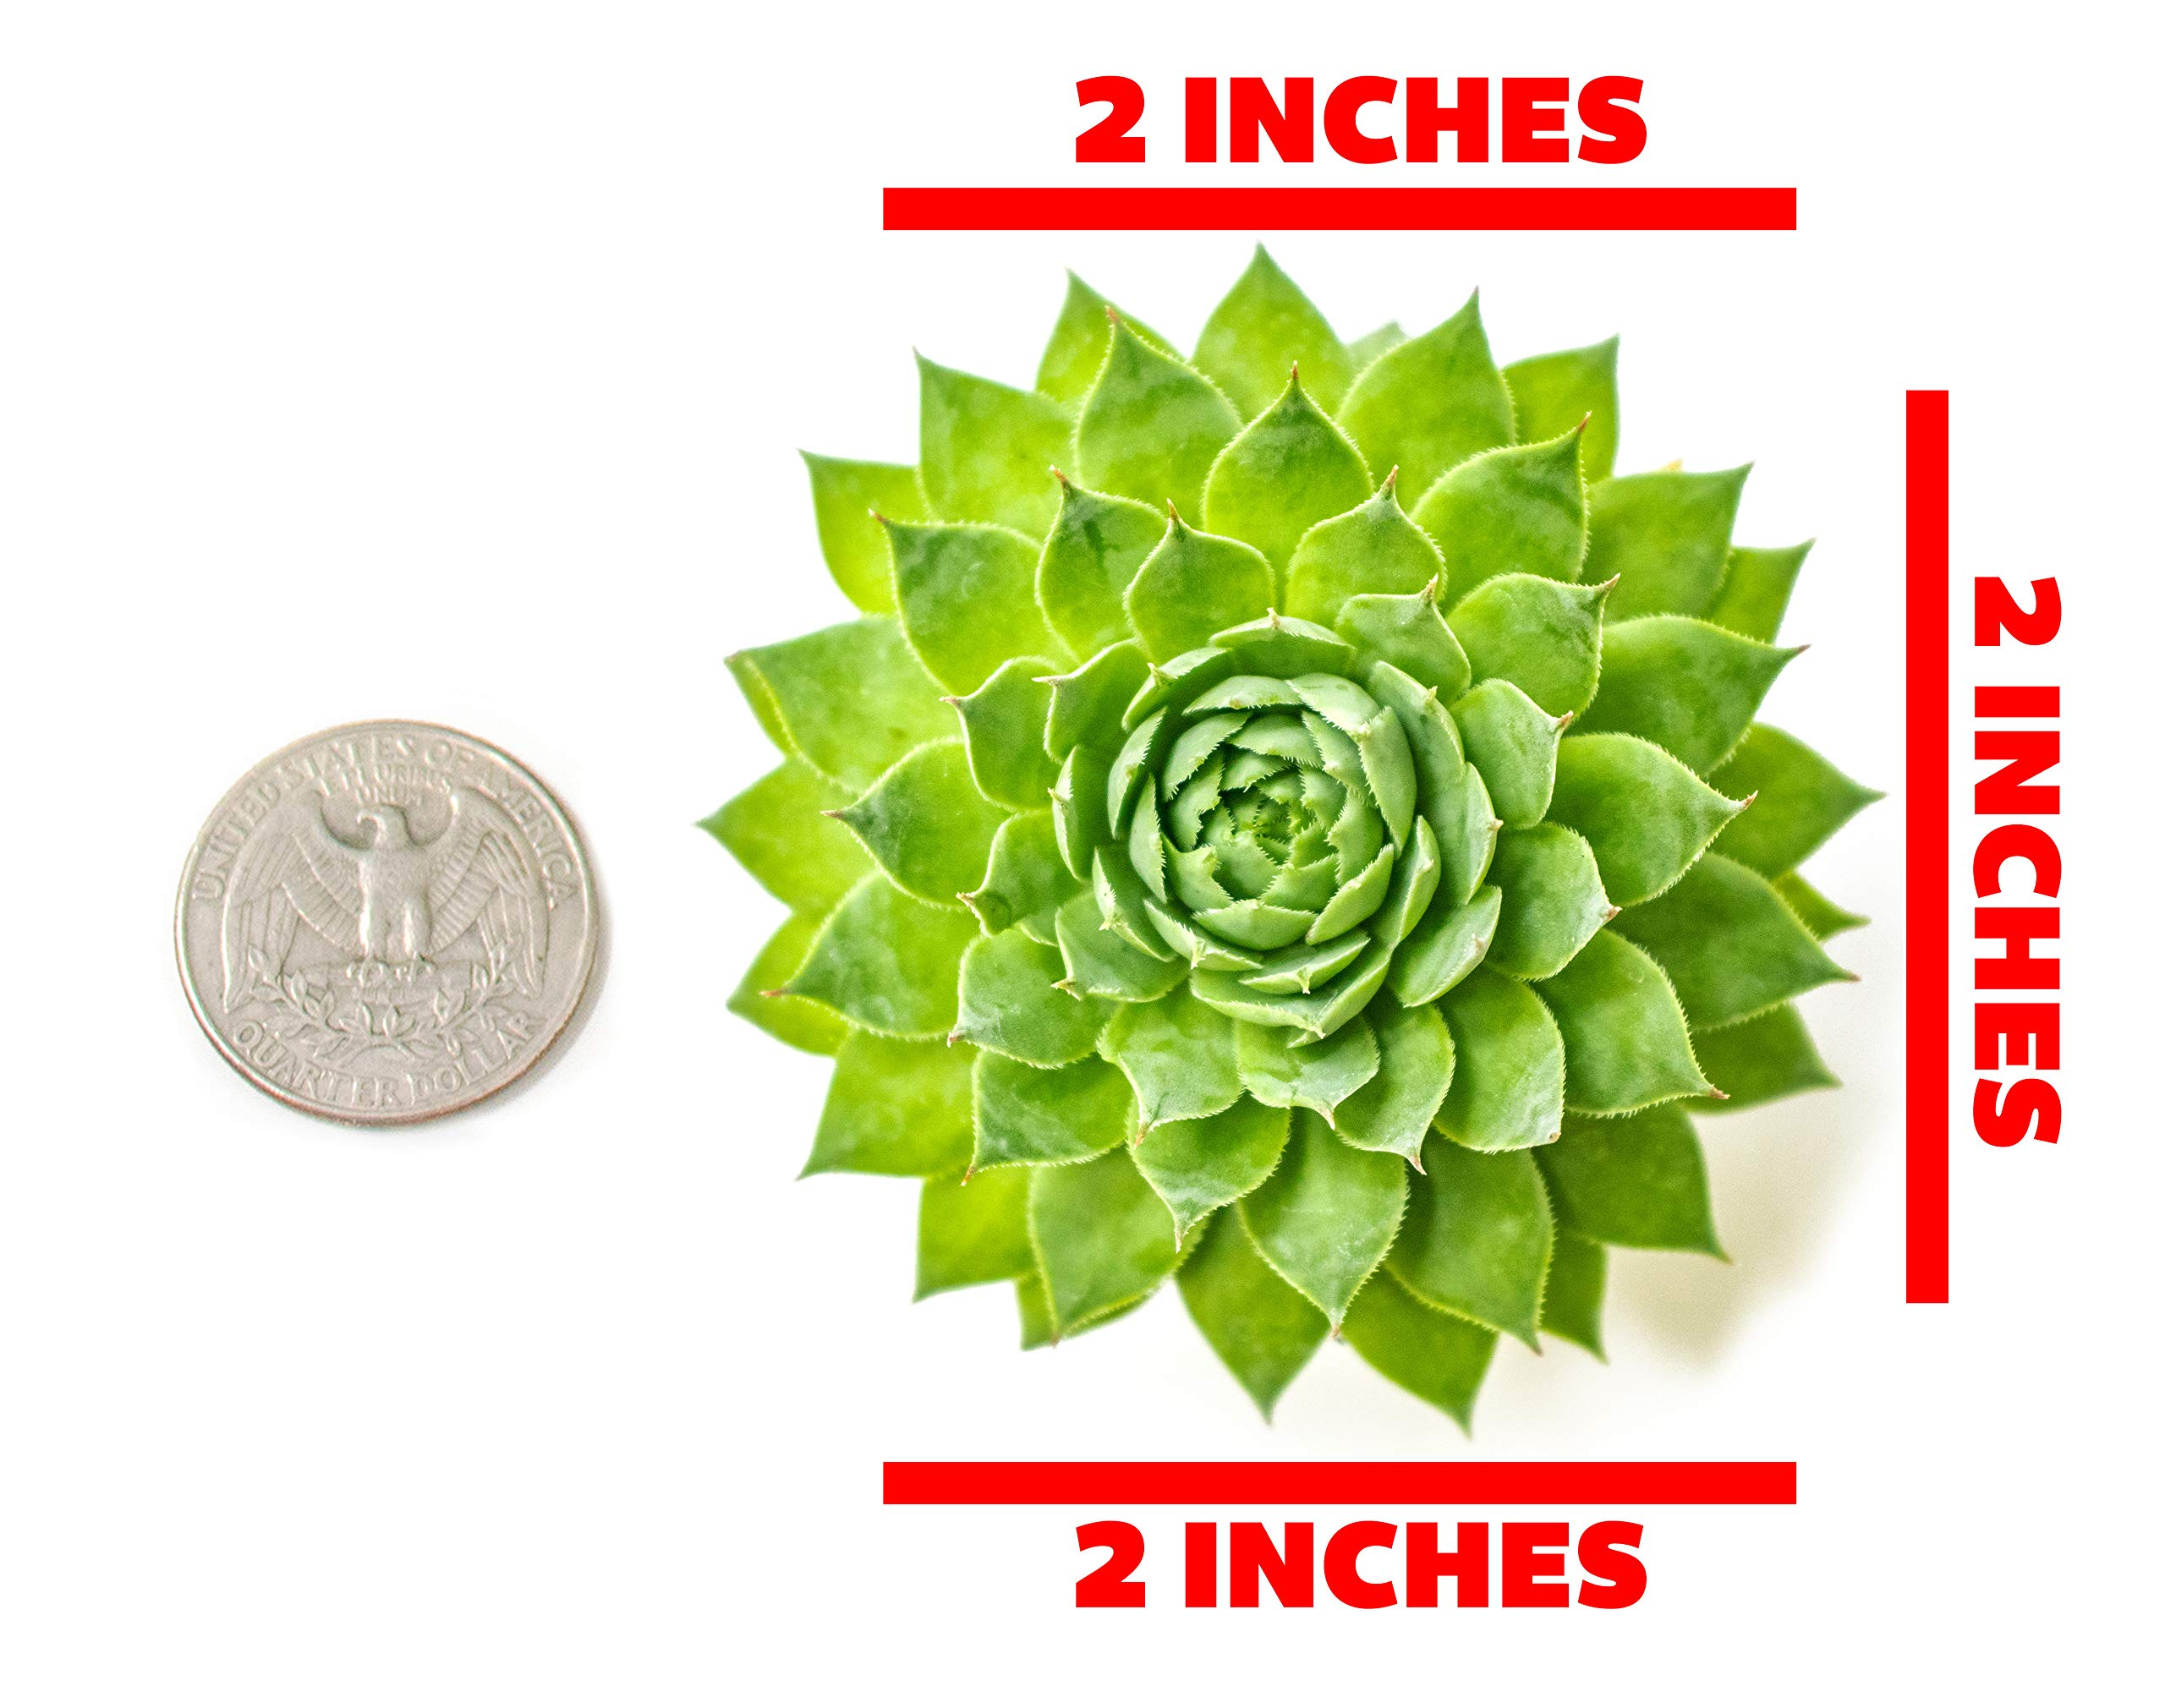 Fractal Succulents(5 Pack) Live Sempervivum Houseleek SucculentRooted in Pots | Flowering Plant Leaves /Geometric Rosettes by Plants for Pets by Plants for Pets (Image #2)